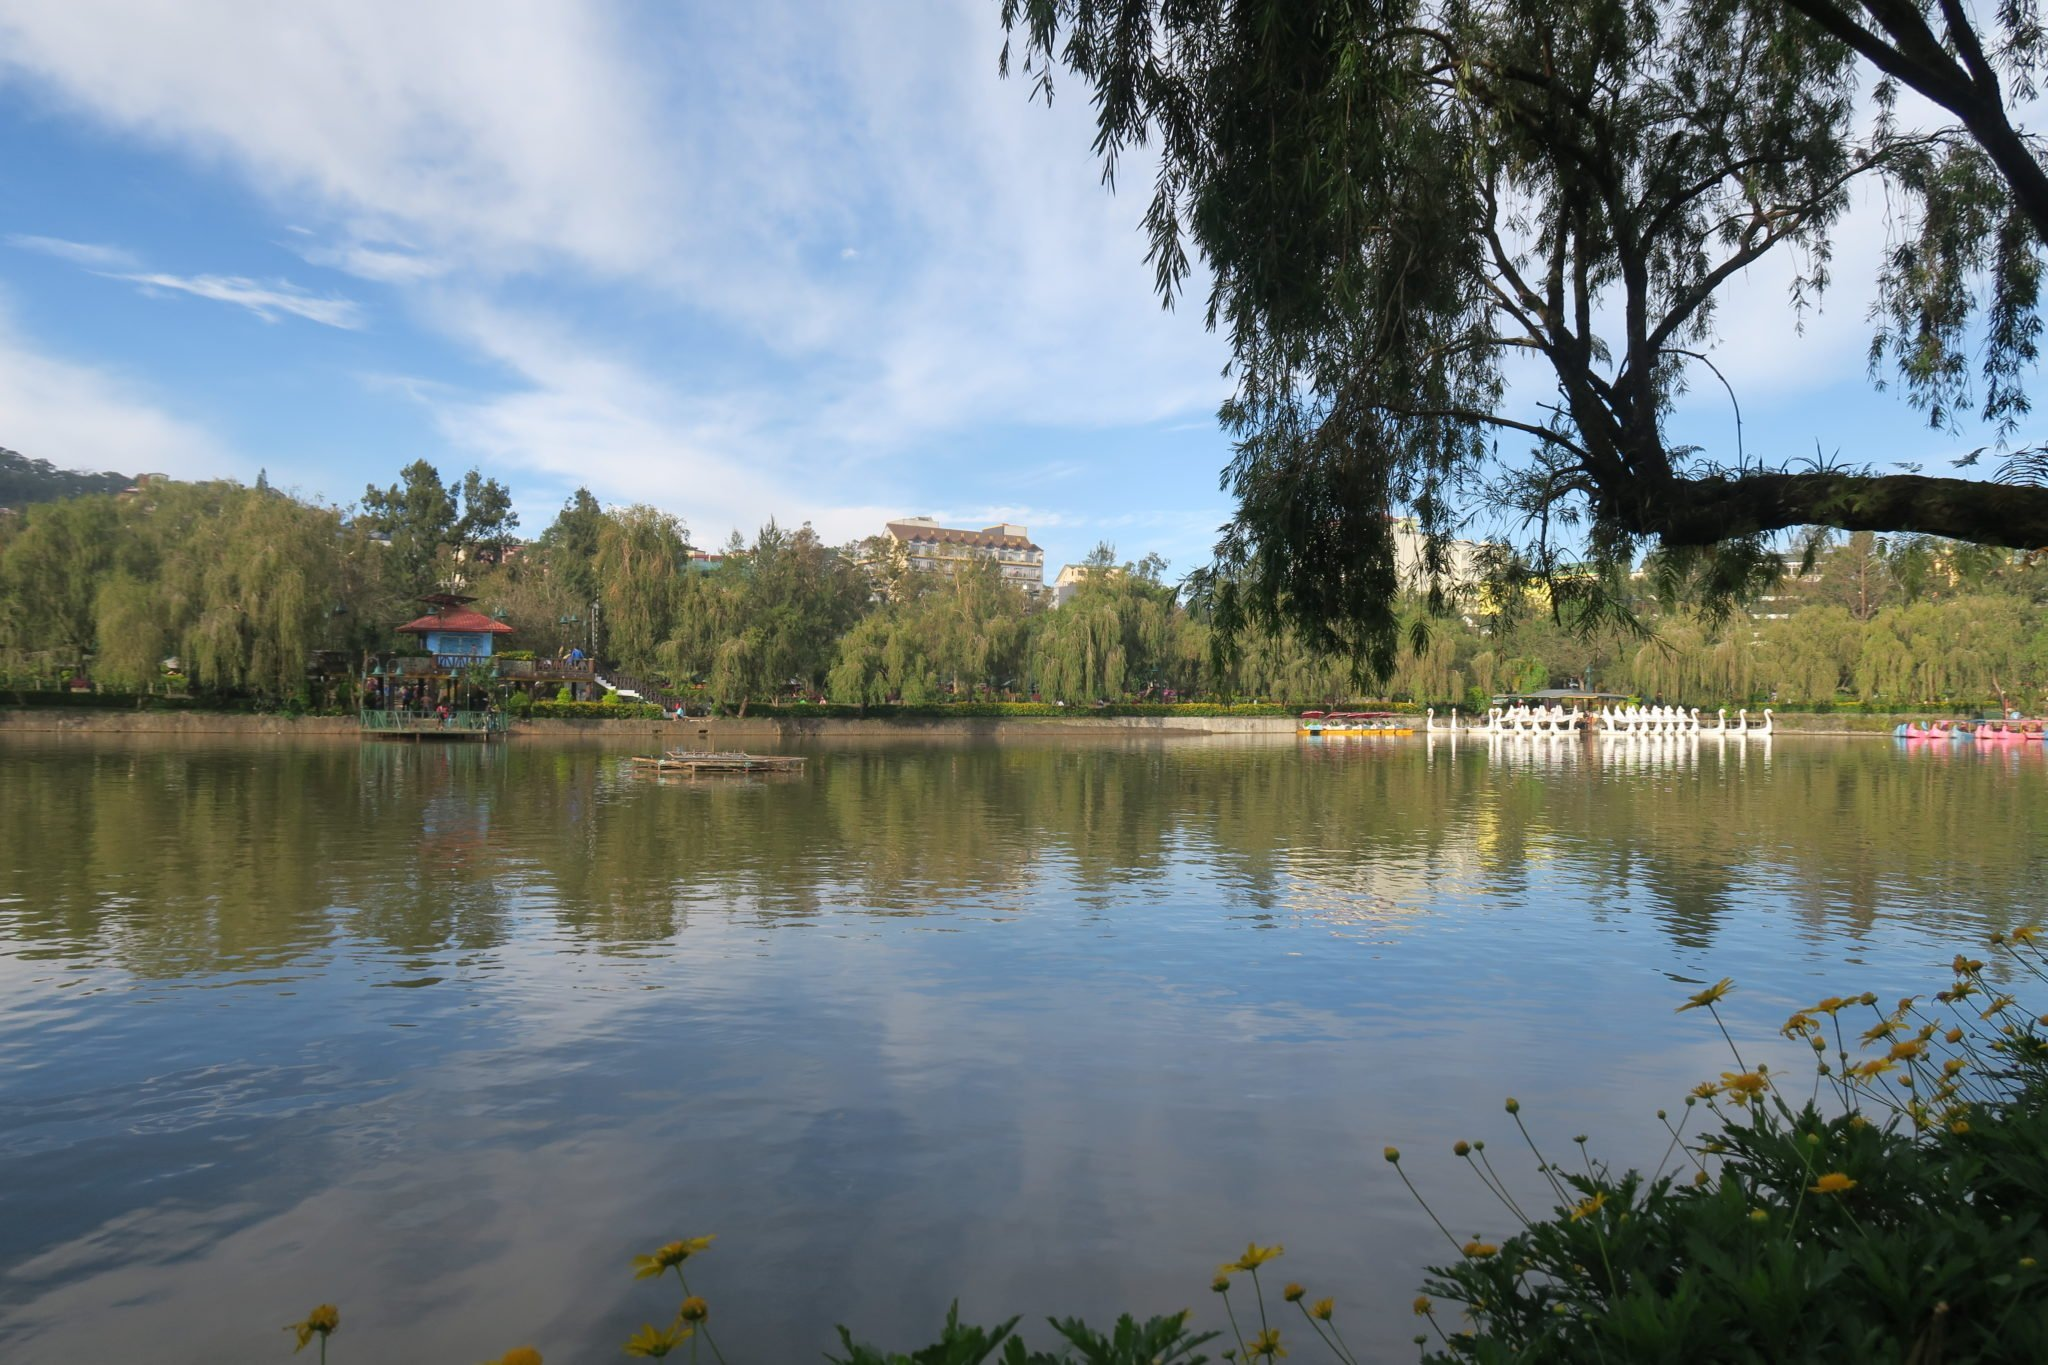 Where to Stay in Baguio under P1,000: Top 22 Baguio